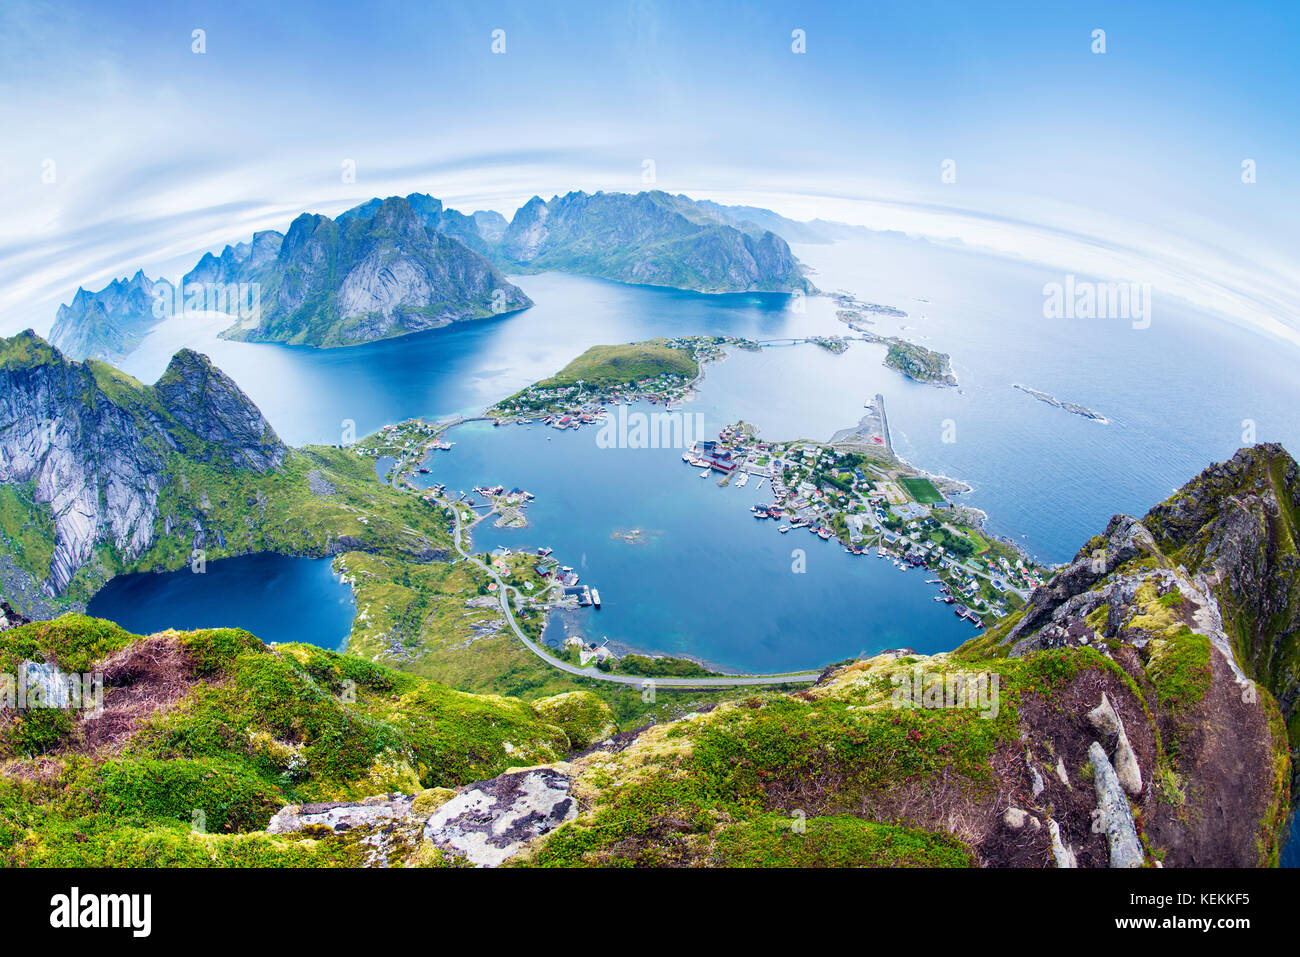 A panorama view of the fishing village of Reine and Lofoten Islands from Reinebringen in Norway - Stock Image